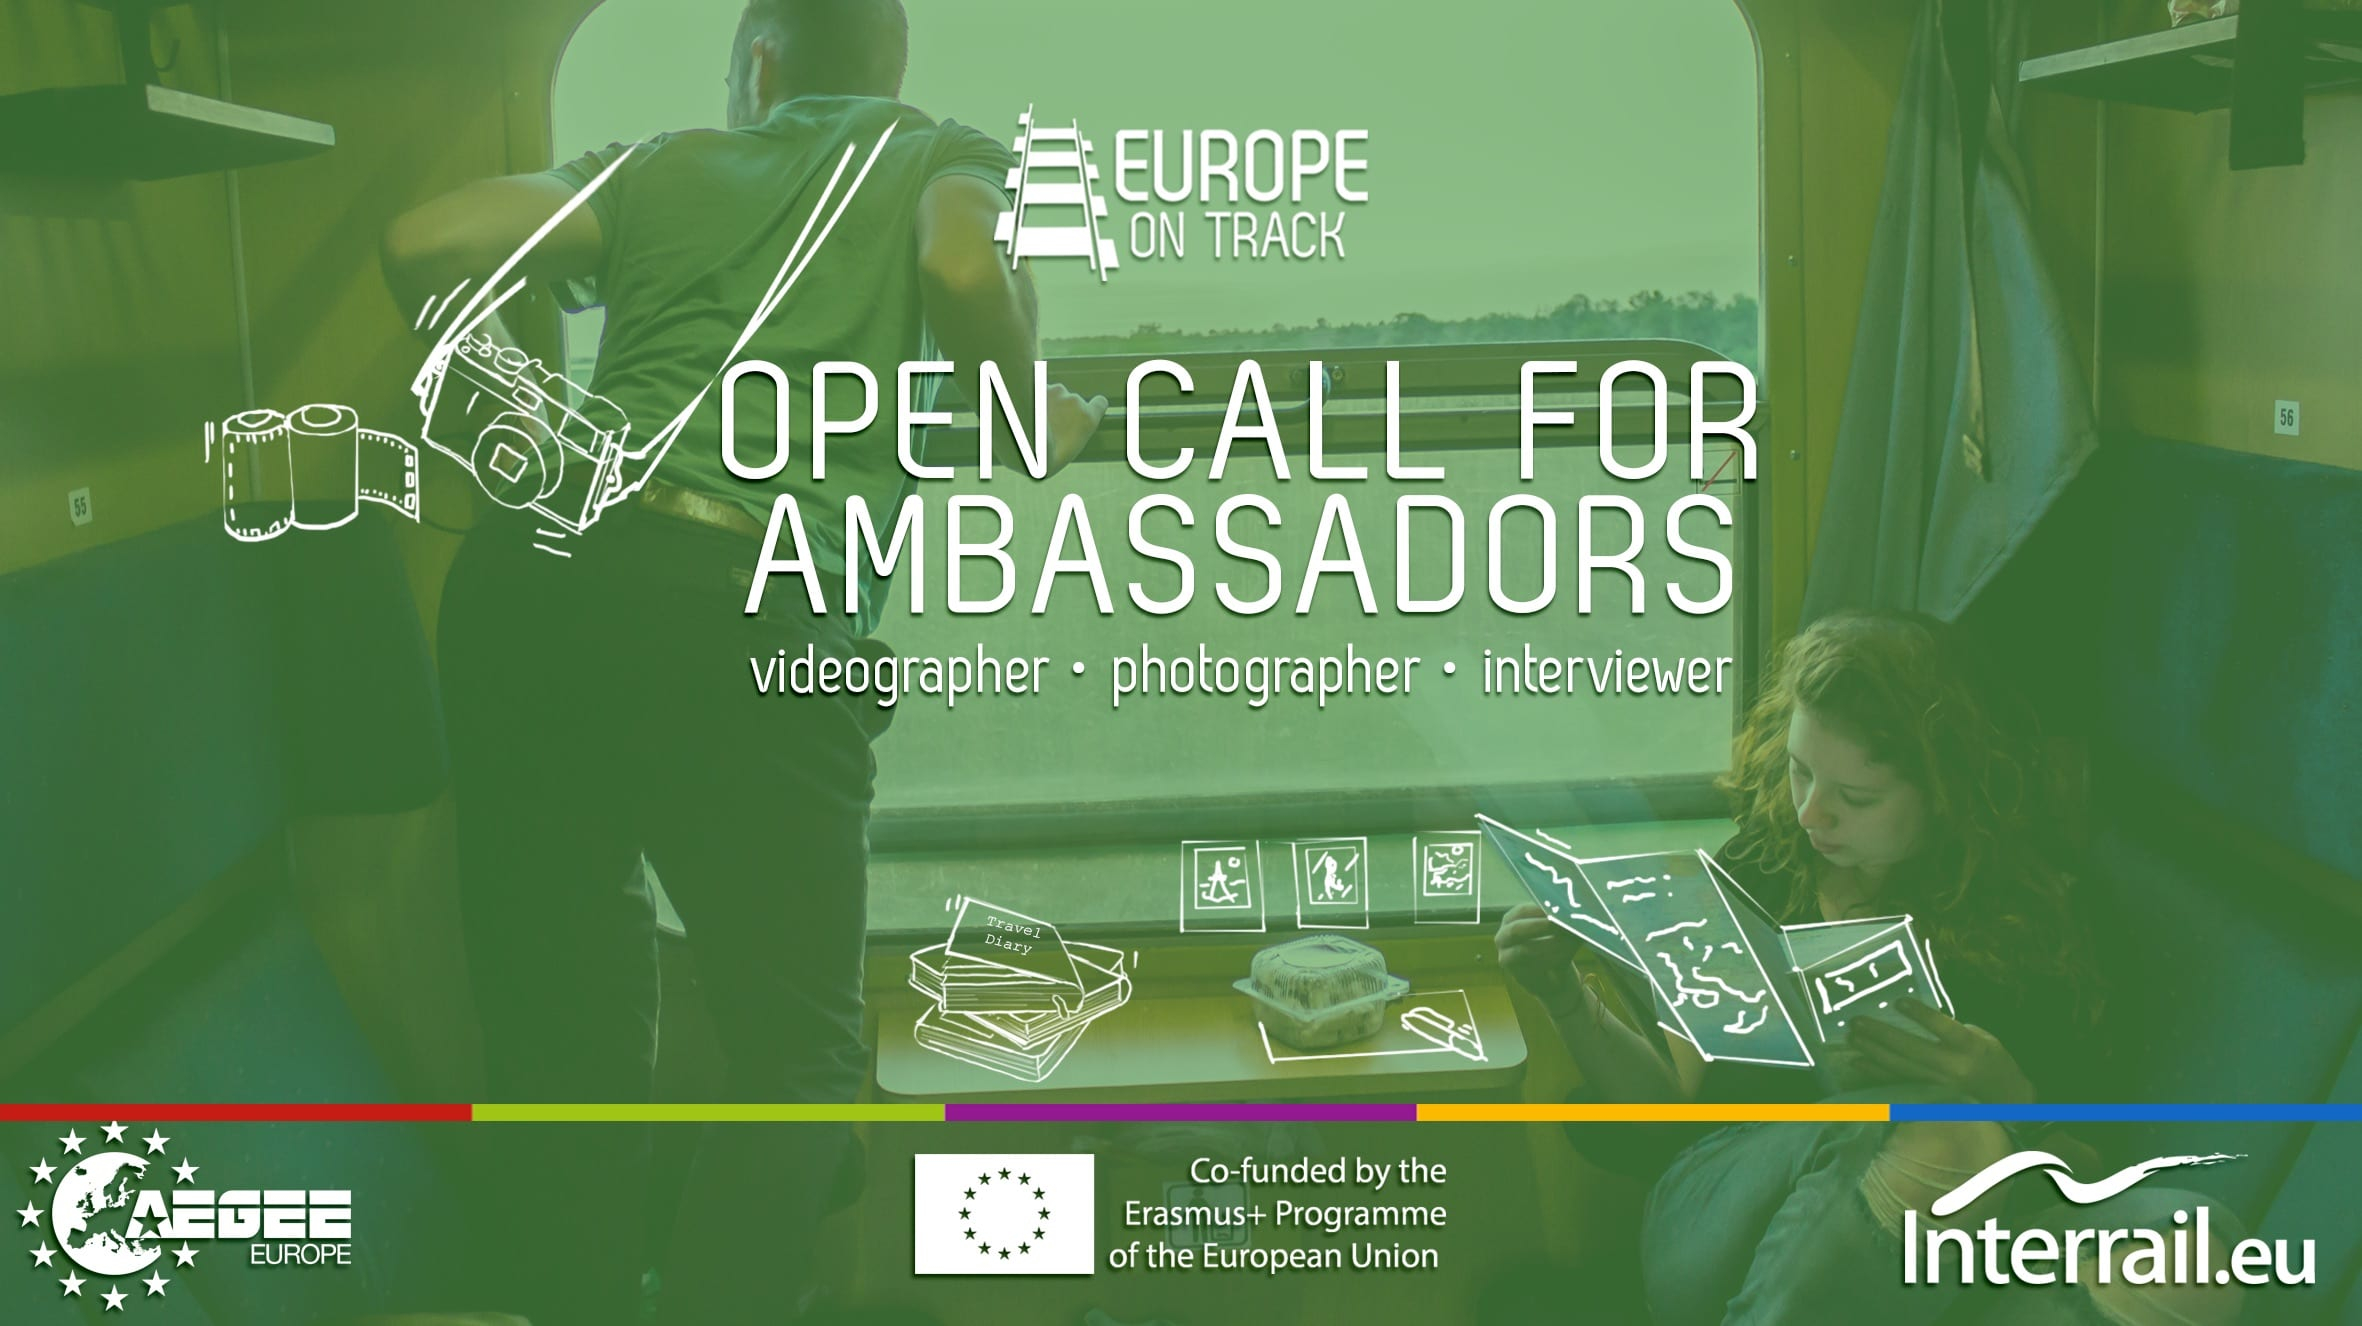 Travel around Europe as an Ambassador for Europe on Track Job 2019